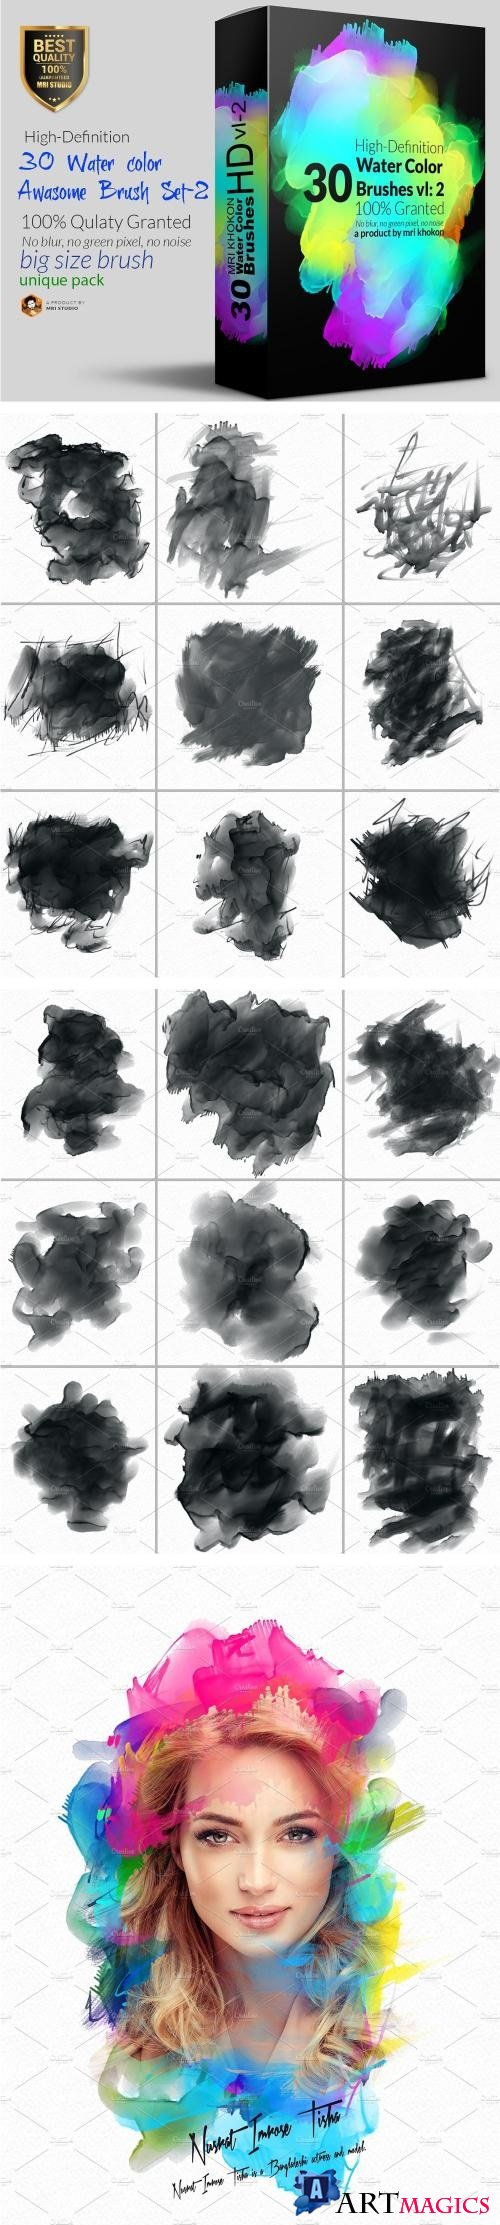 Hi-Res Water color PS Brush Set-2 - 1498779